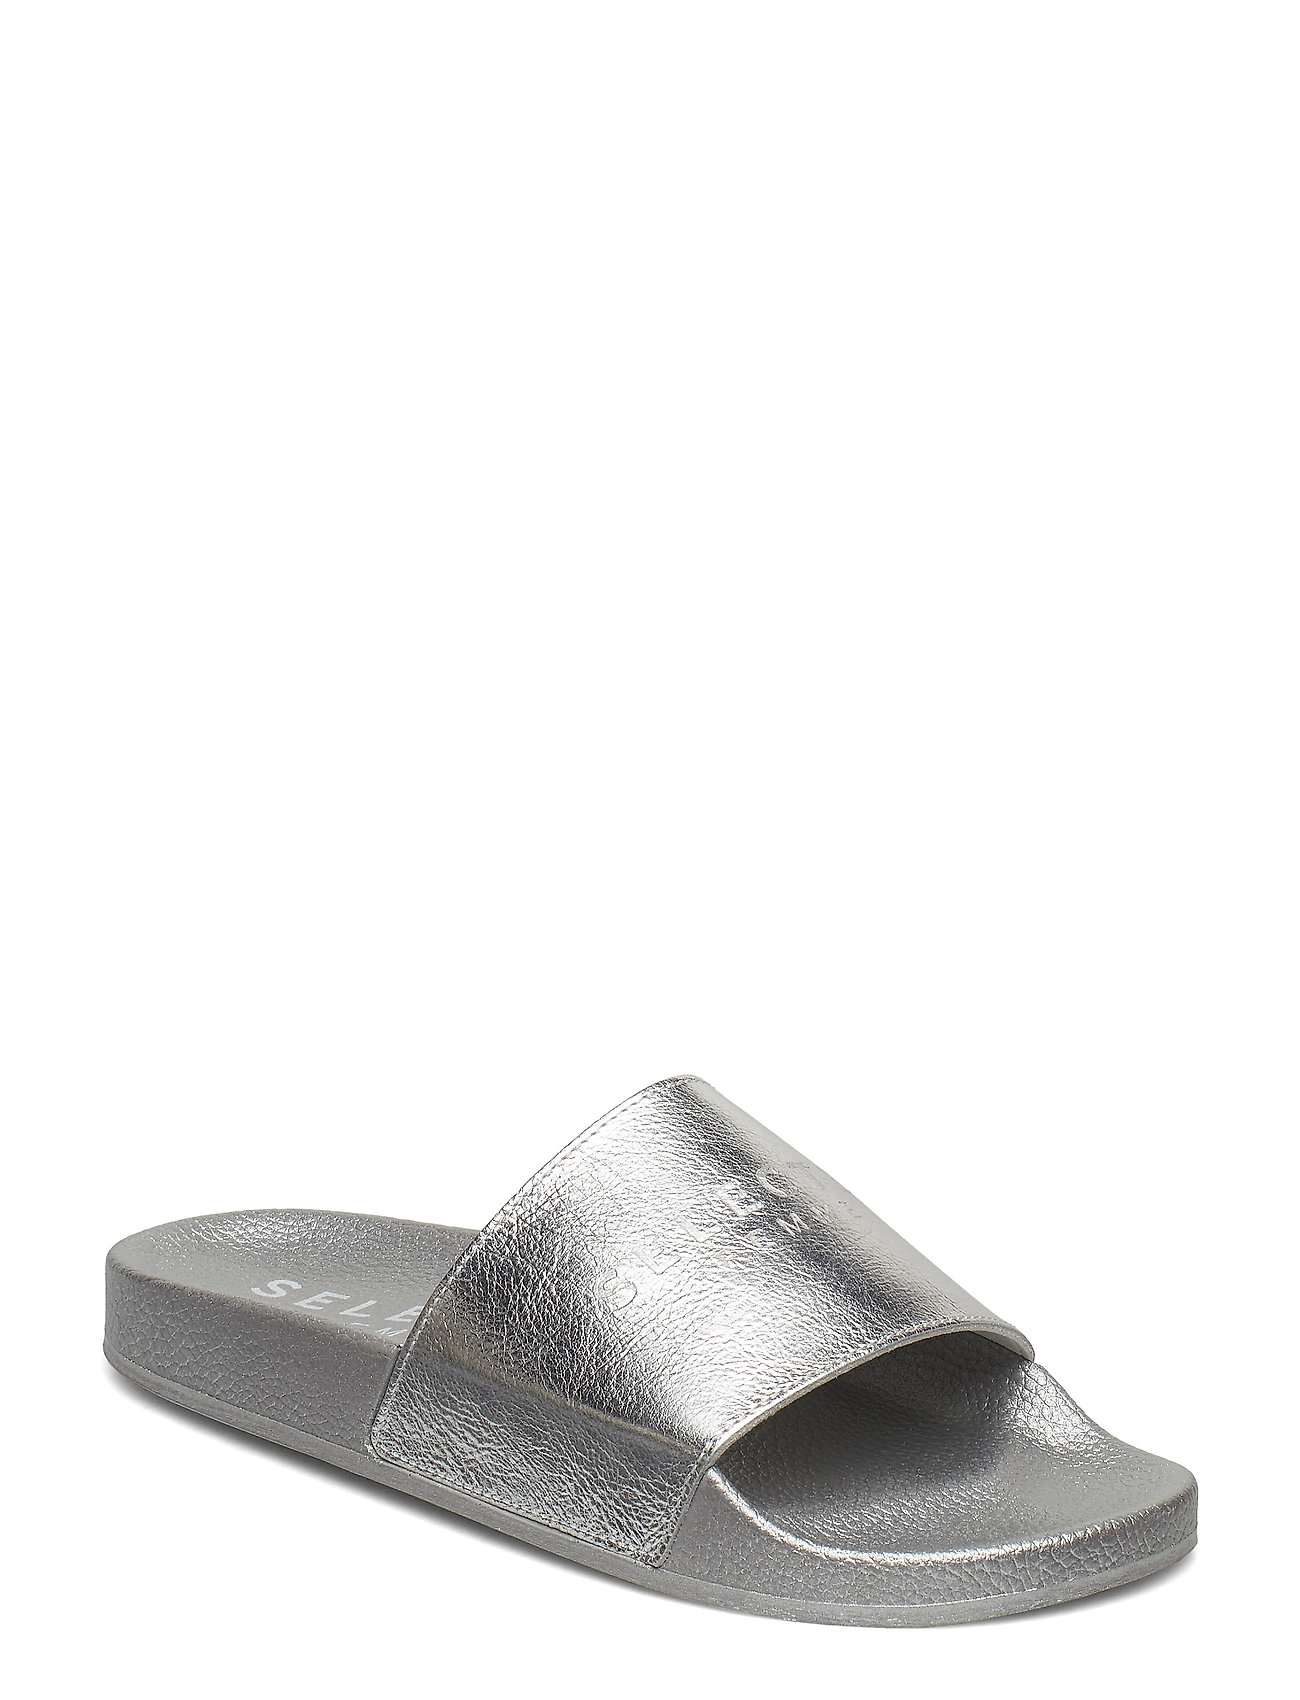 9b9428478a5 Slfsteph Leather Slider B (Silver) (32.49 €) - Selected Femme ...